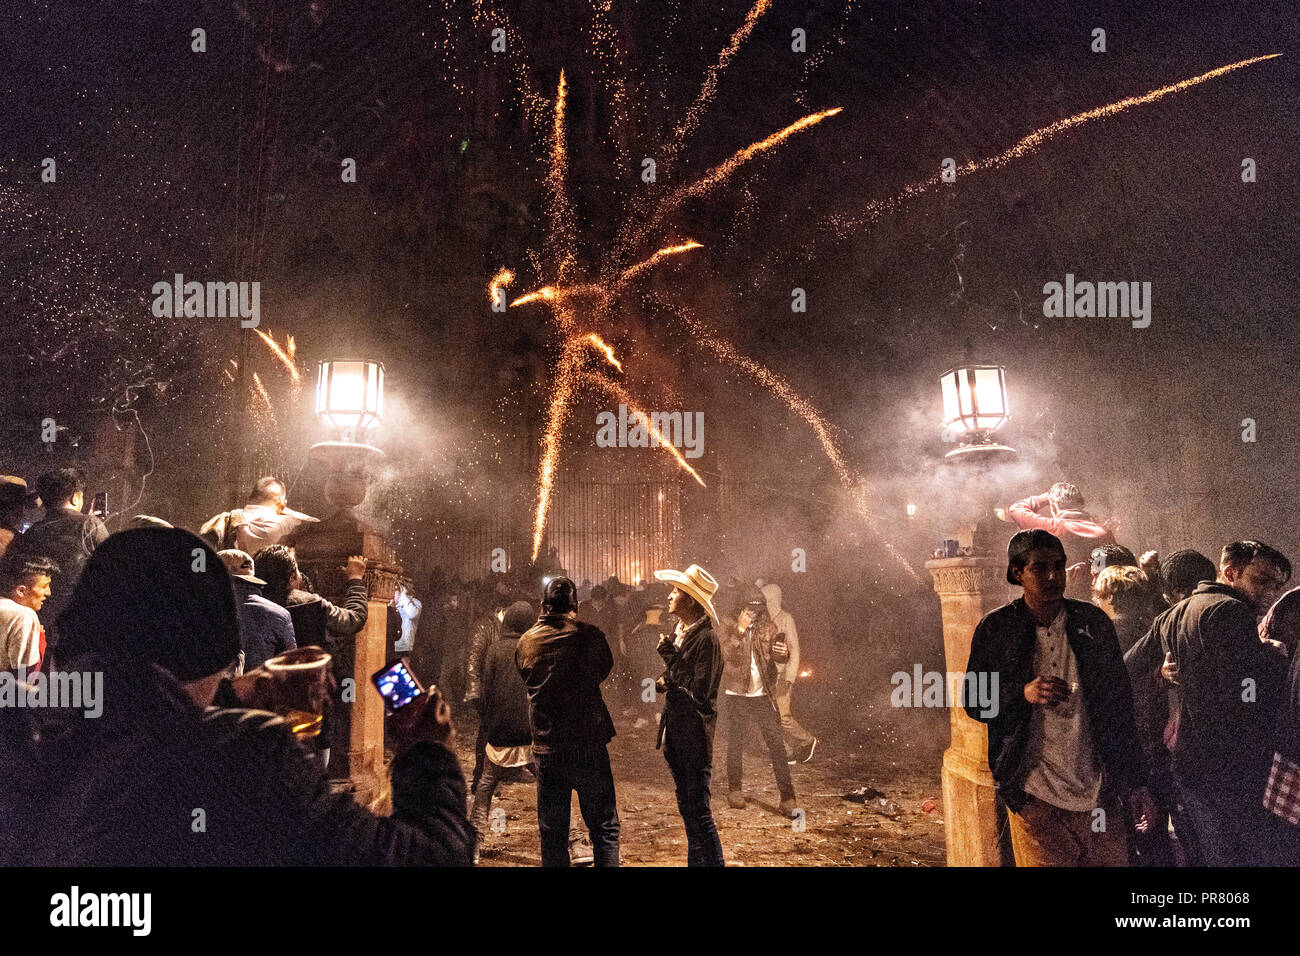 San Miguel de Allende, Mexico. 29th Sept 2018. A group of onlookers watch a barrage of sky rockets explode from relative safety during the Alborada festival September 29, 2018 in San Miguel de Allende, Mexico. The unusual festival celebrates the cities patron saint with a two hour-long firework battle at 4am representing the struggle between Saint Michael and Lucifer. Credit: Planetpix/Alamy Live News - Stock Image